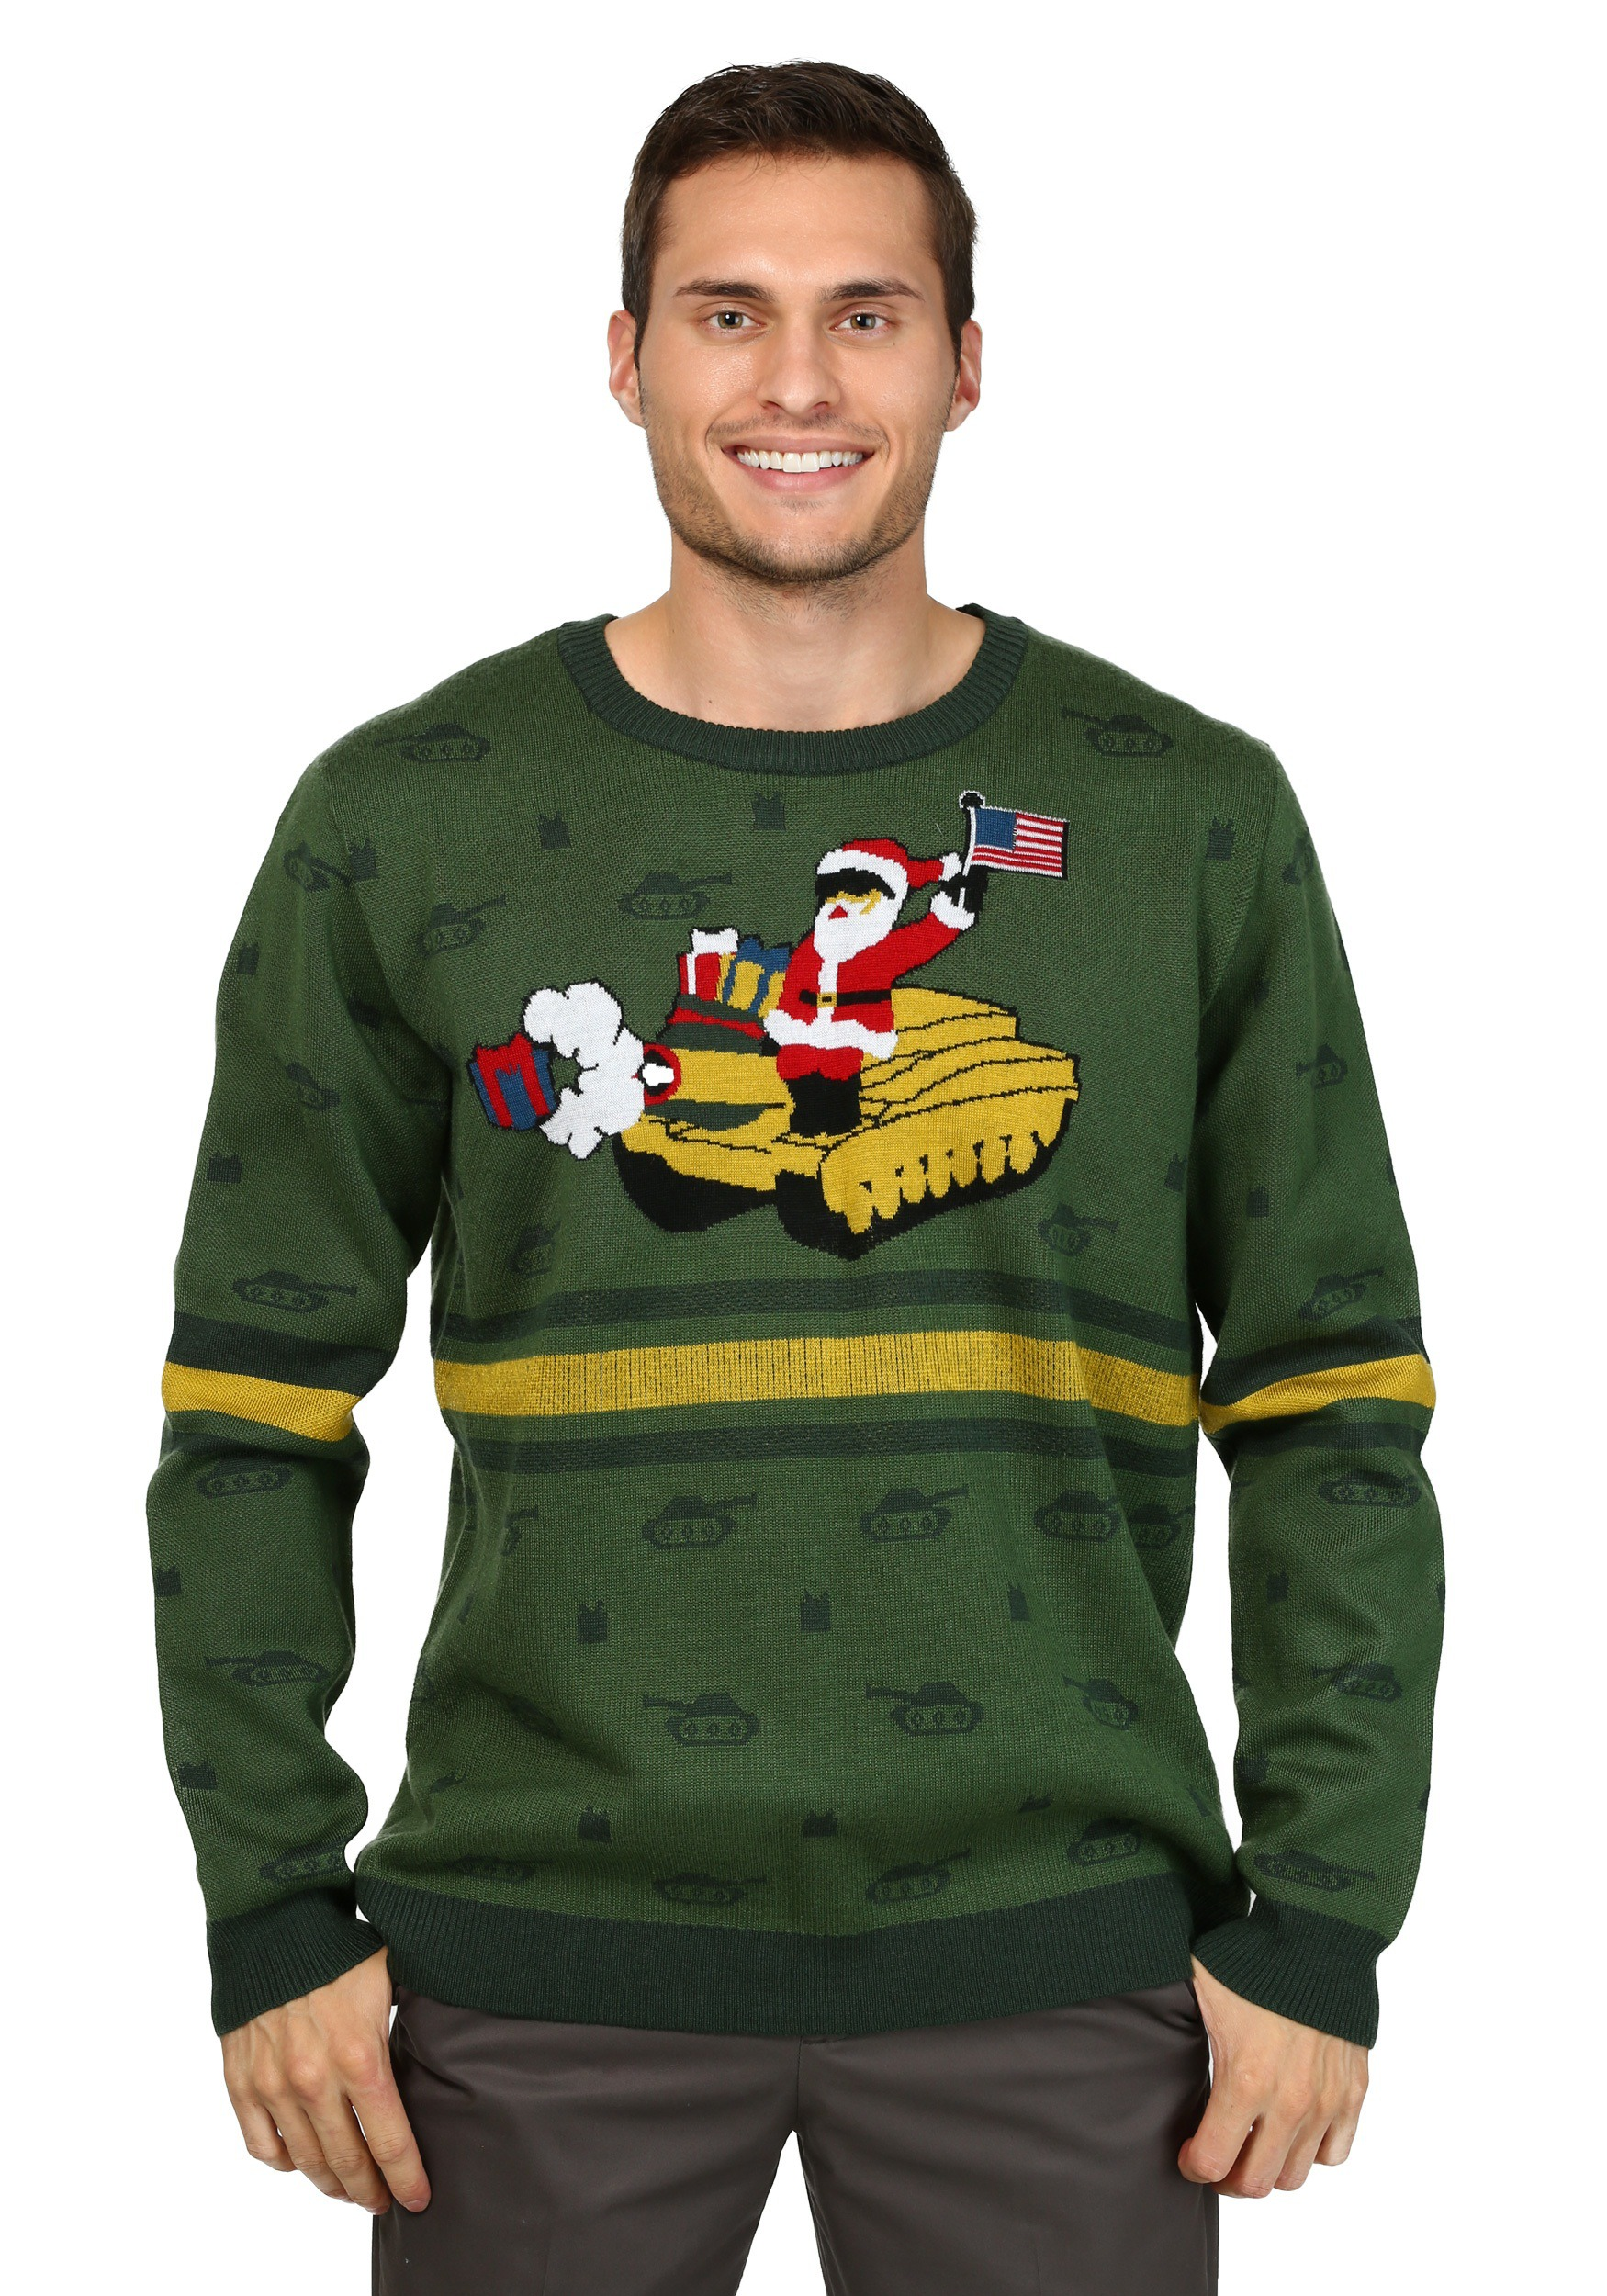 eacvuazs.ga: christmas sweaters for men. From The Community. Amazon Try Prime All Funny Ugly Xmas Men's Sweatshirt a must have for Christmas ugly sweater contest! v28 Men's Christmas Reindeer Snowman Penguin Santa and Snowflakes Sweater. by v $ - .